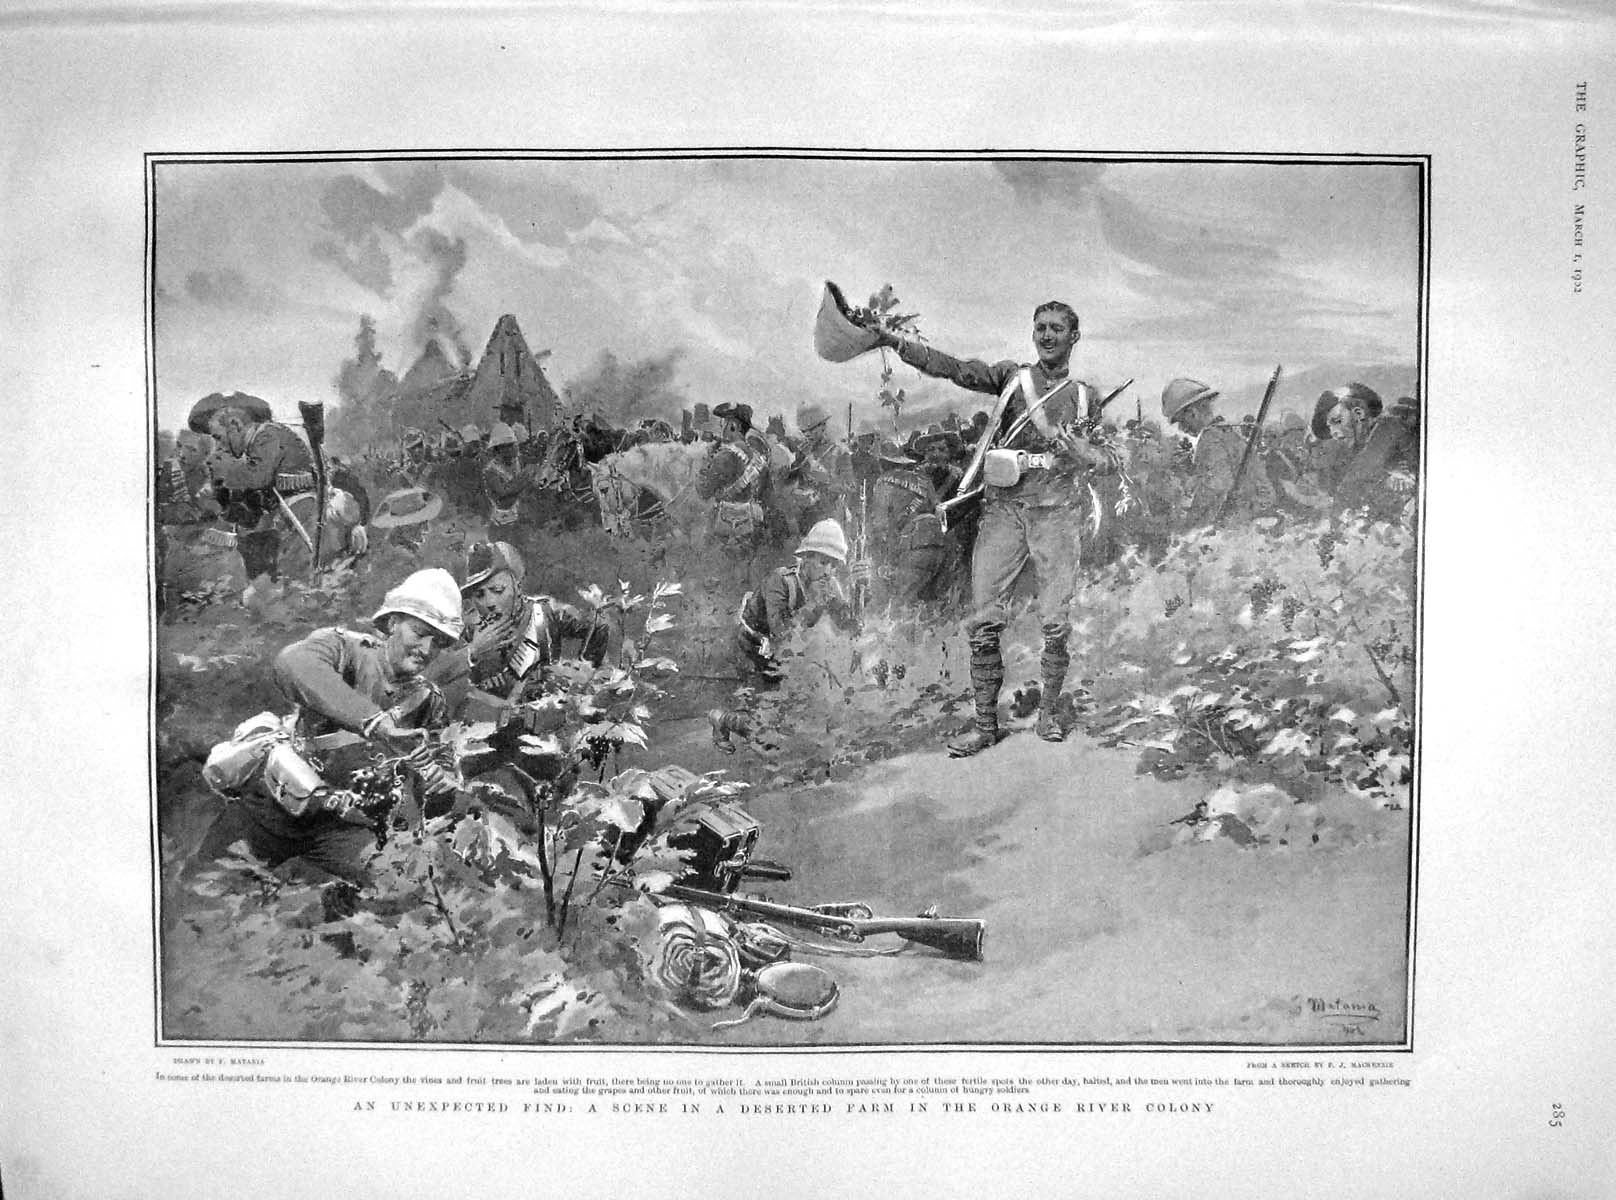 [Print 1902 Deserted Farm Orange River Colony Africa Soldiers  Old Original]